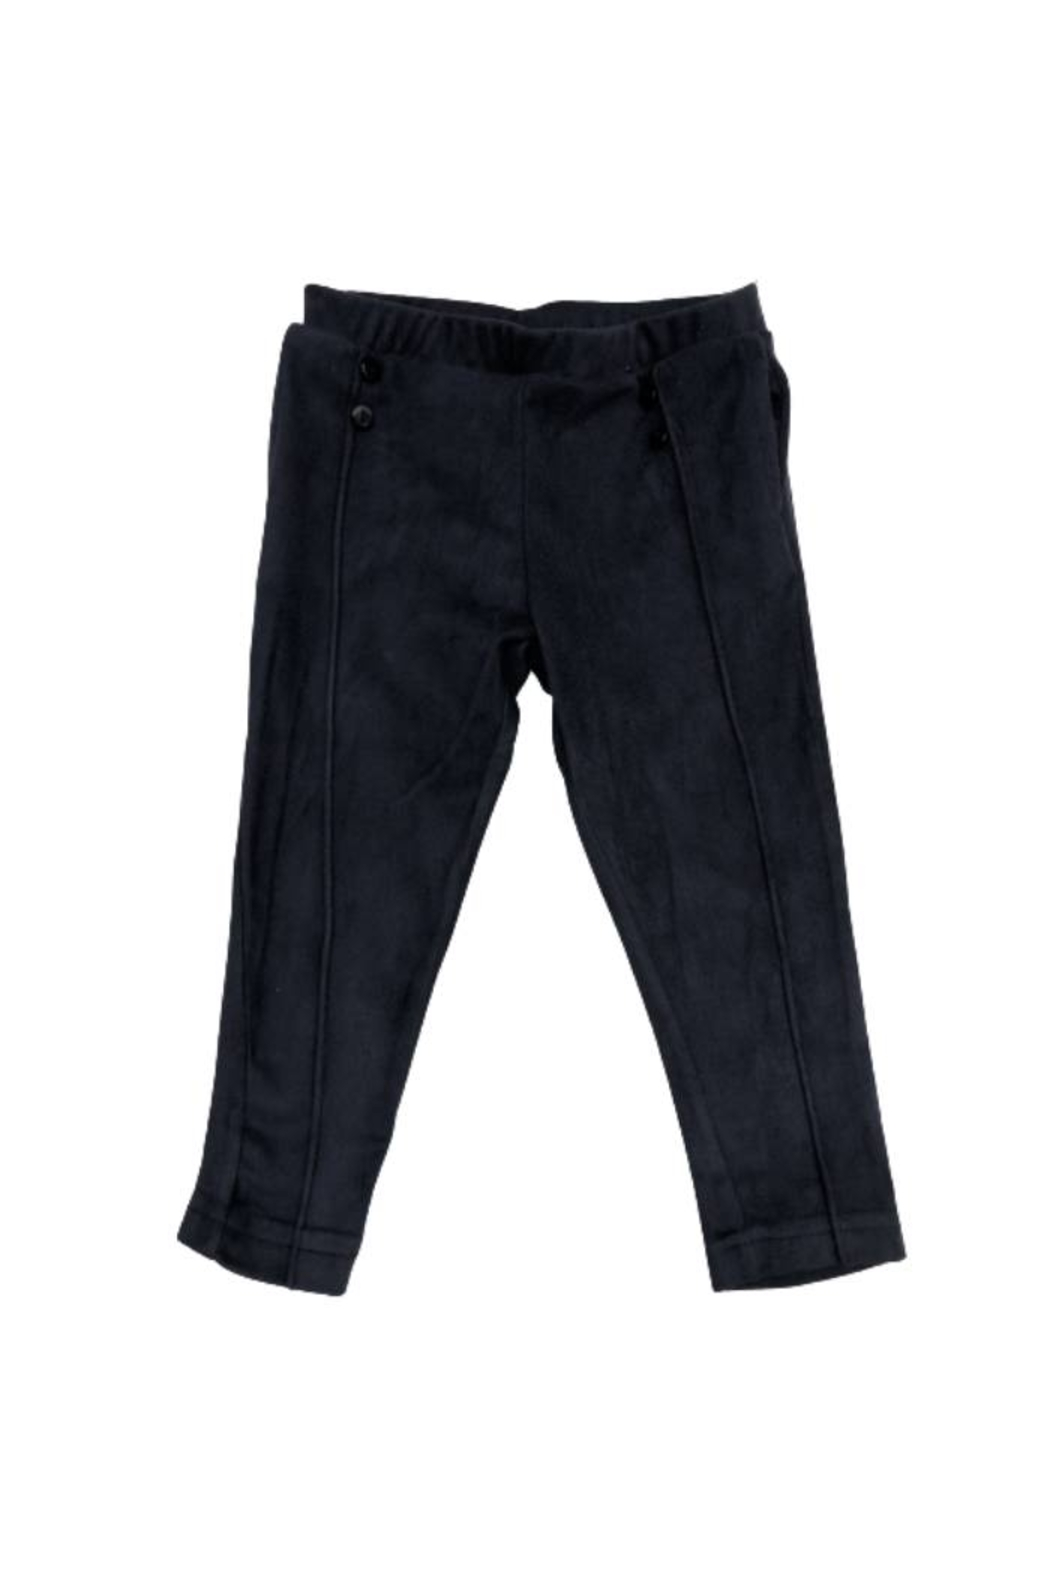 YELL-OH Suede Blue Pant for Baby Boy - Main Image